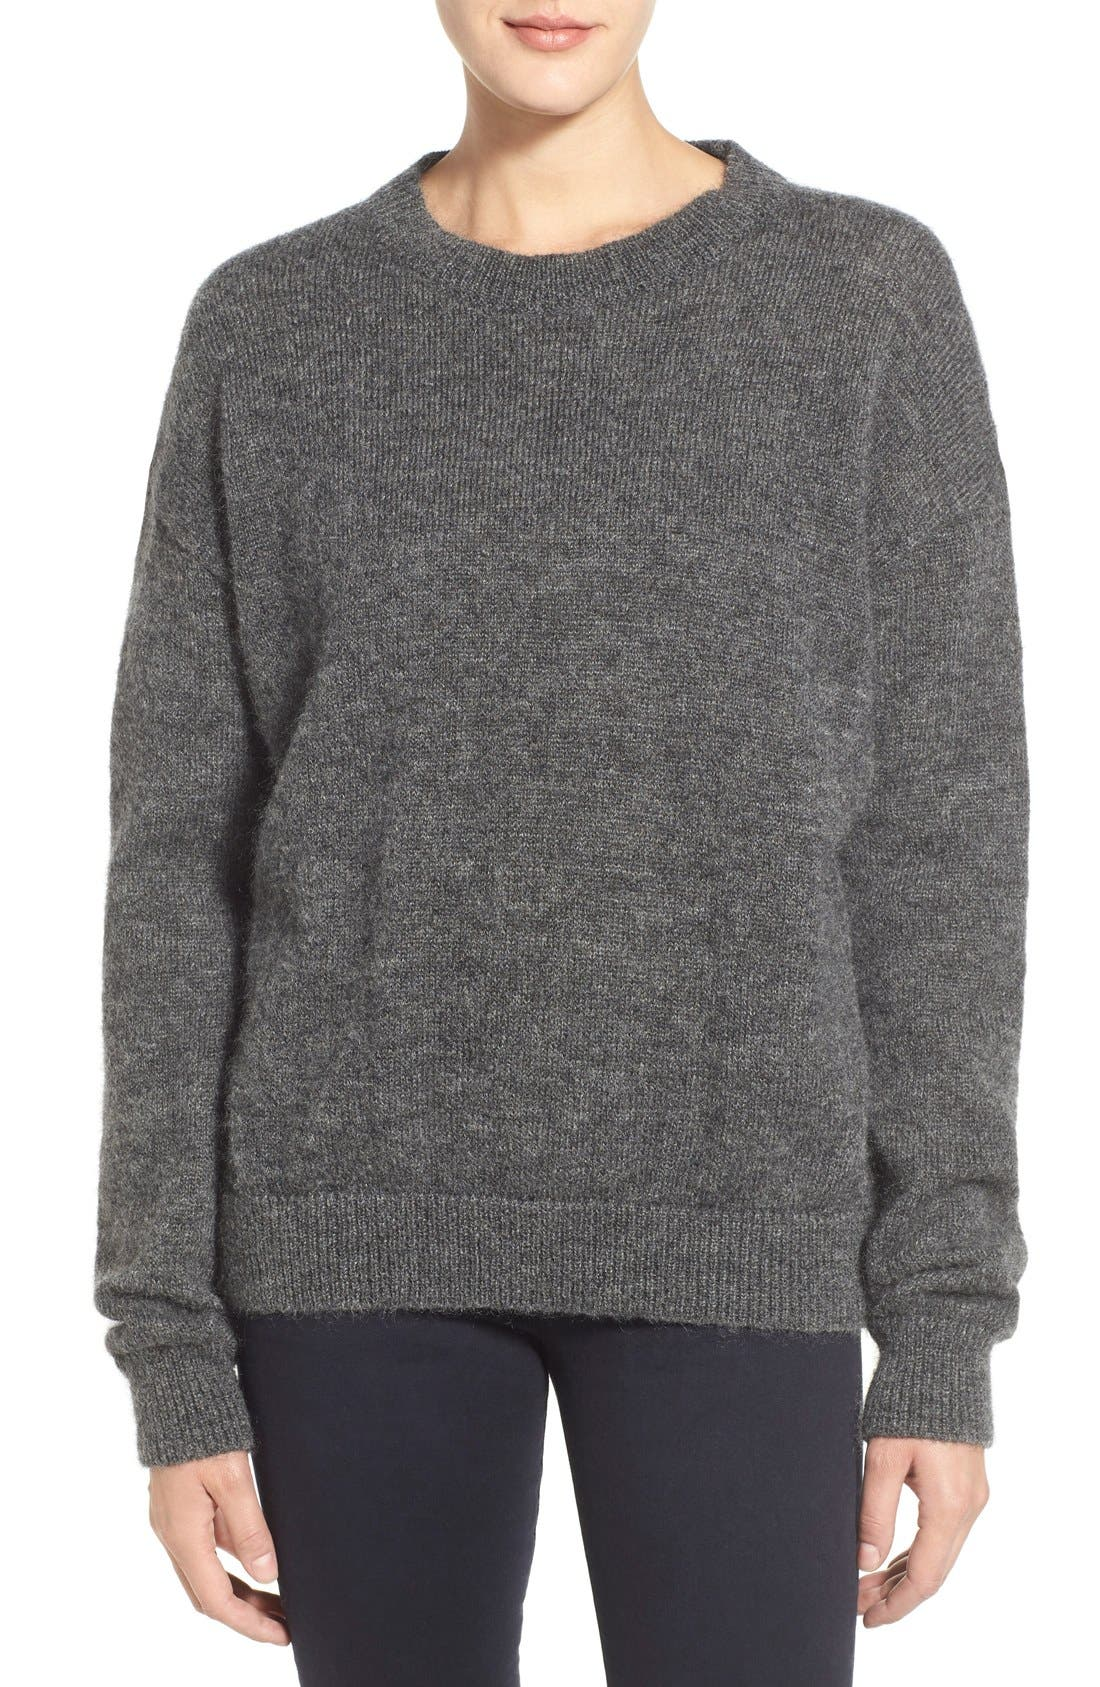 Alternate Image 1 Selected - M.i.h. Jeans 'Delo' Mohair Blend Crewneck Sweater